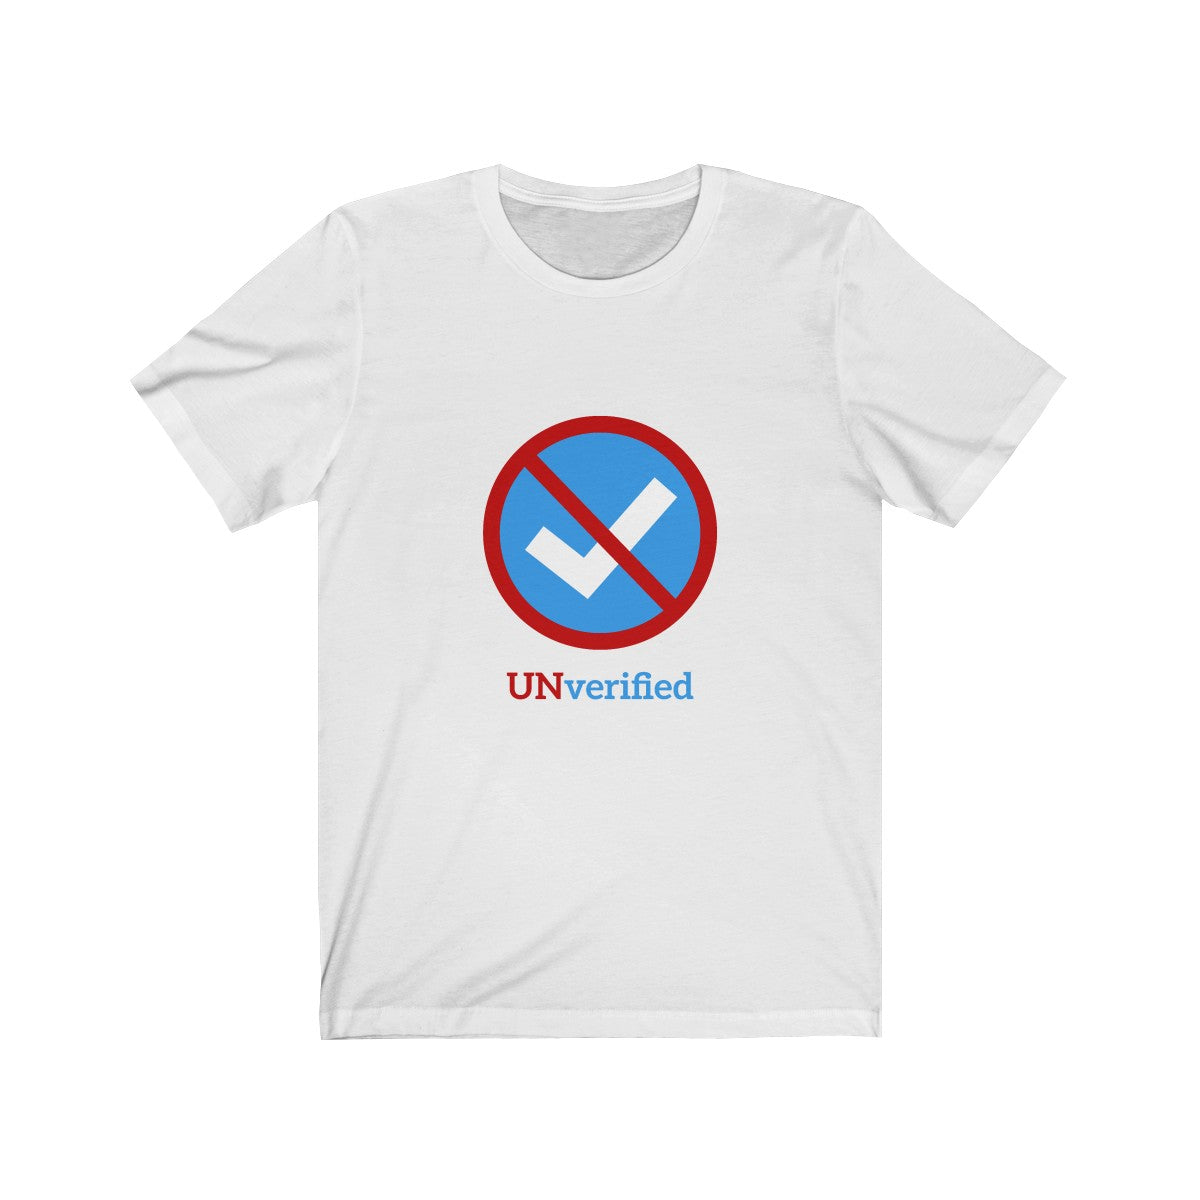 UNverified Short Sleeve Tee